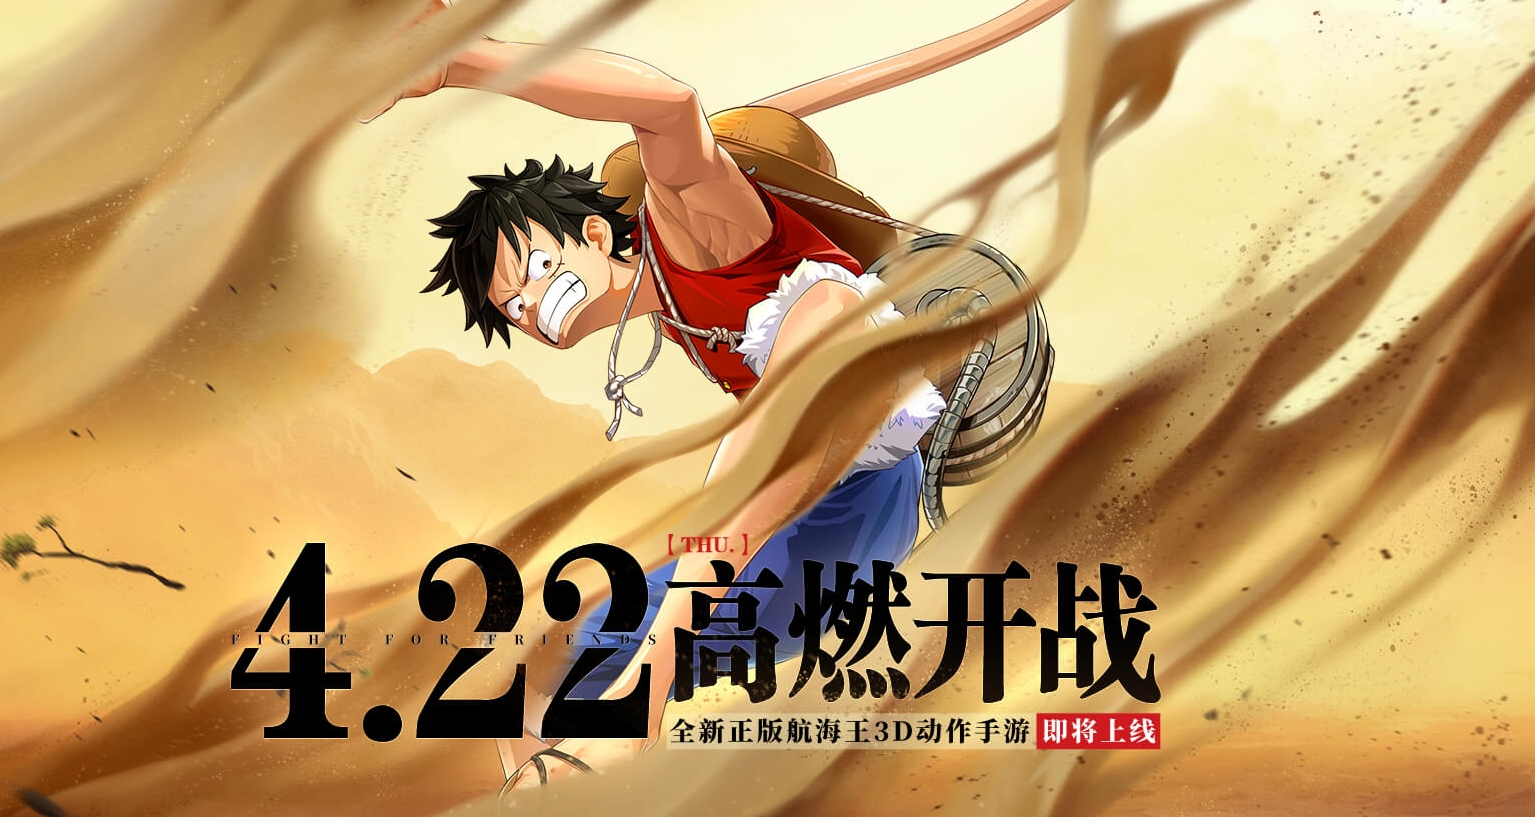 One Piece Fighting Path 1342021 1